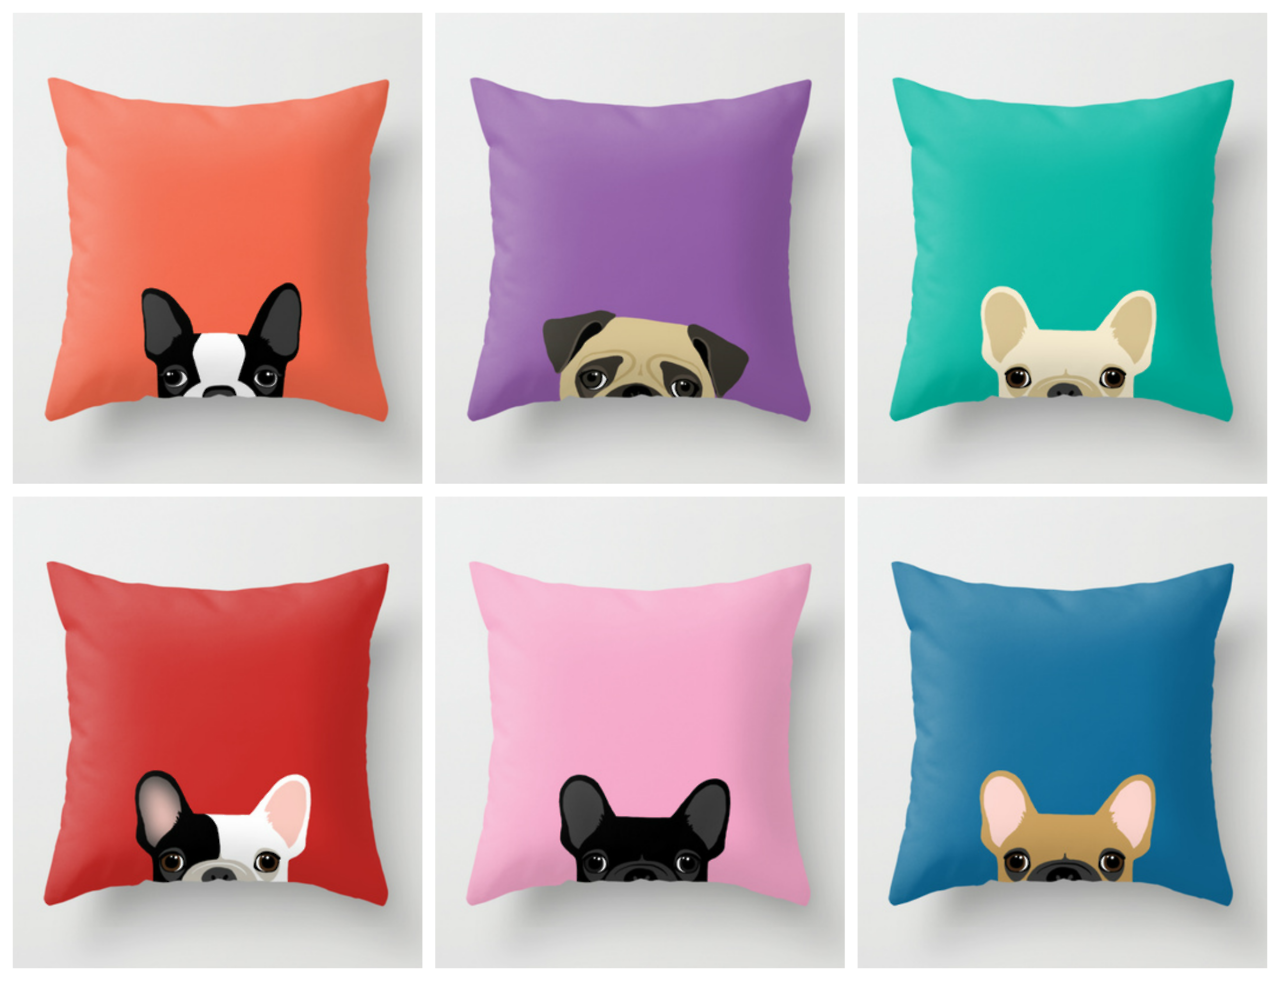 Tumblr Pillows Related Keywords & Suggestions - Tumblr ...